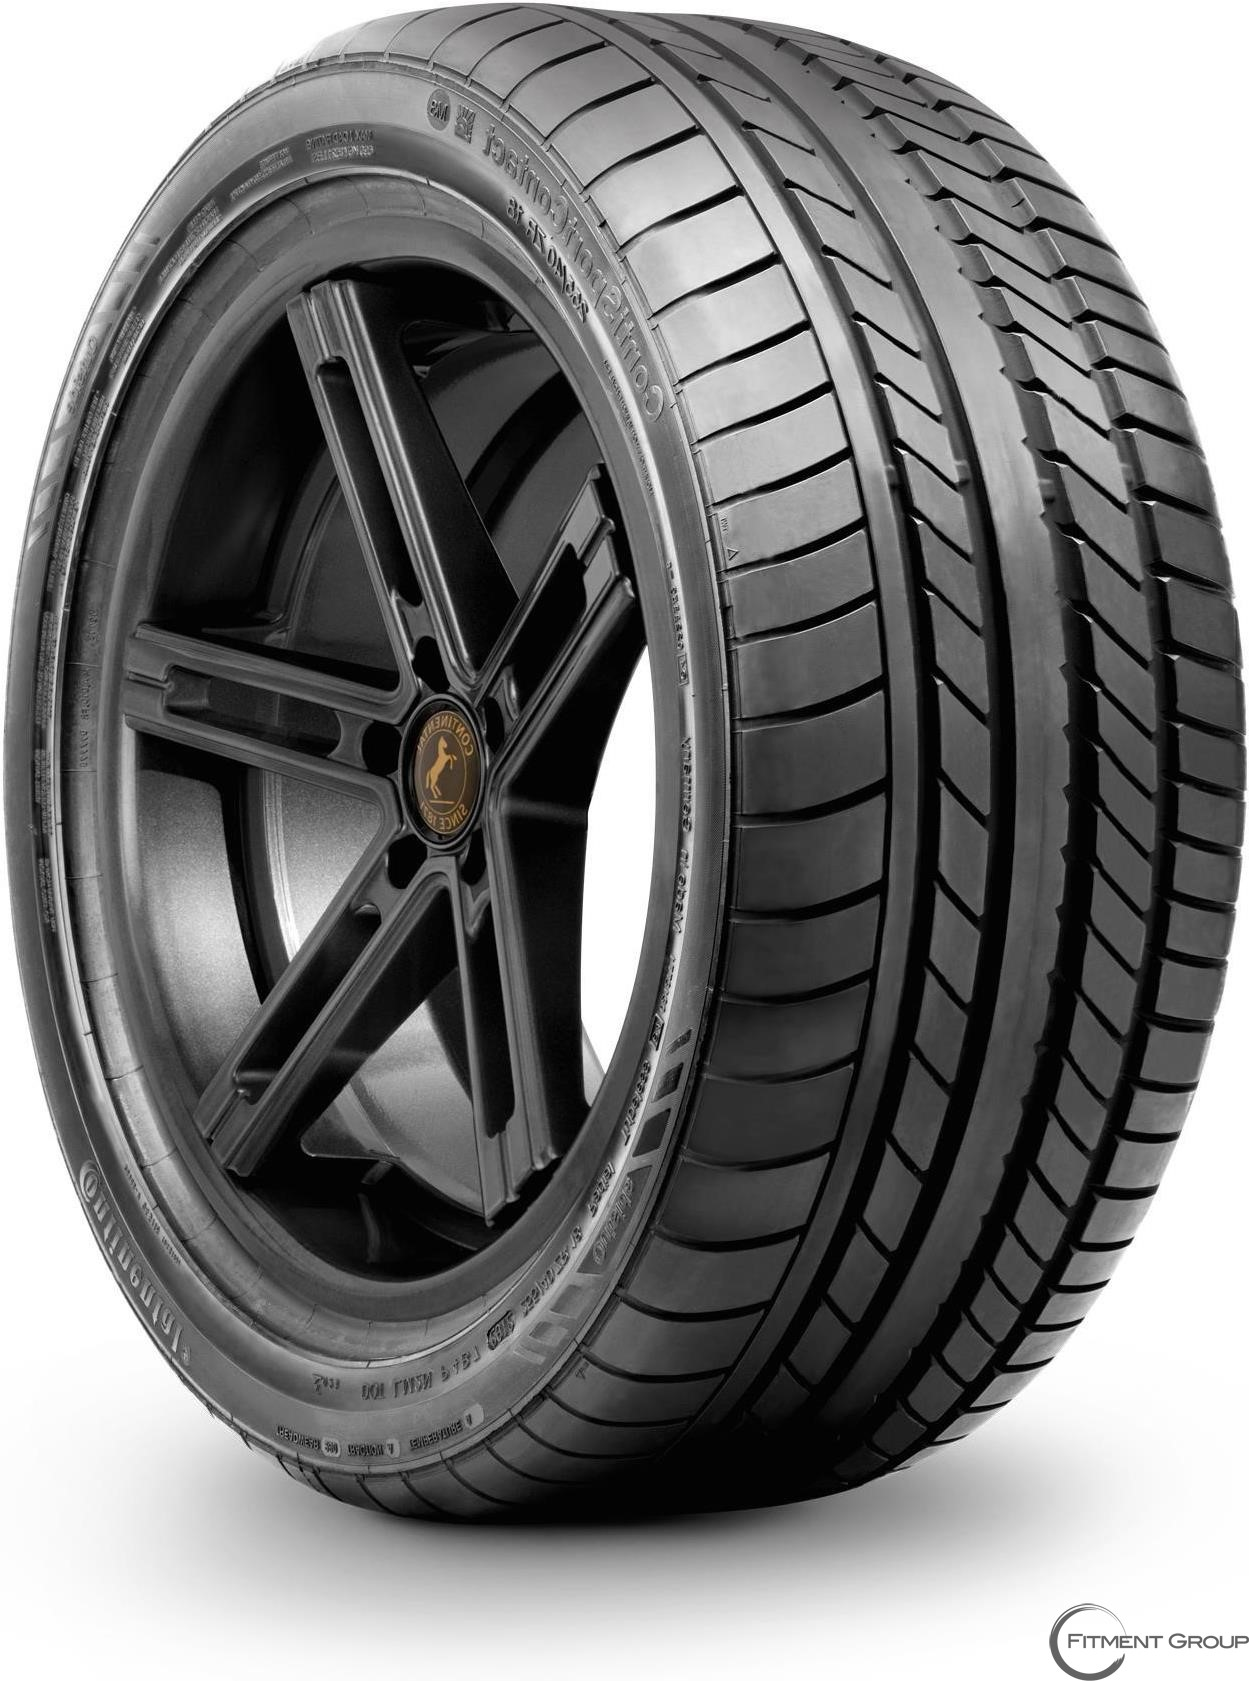 RF 235/45R19 SPORTCONTACT 5 95V BSW CNT